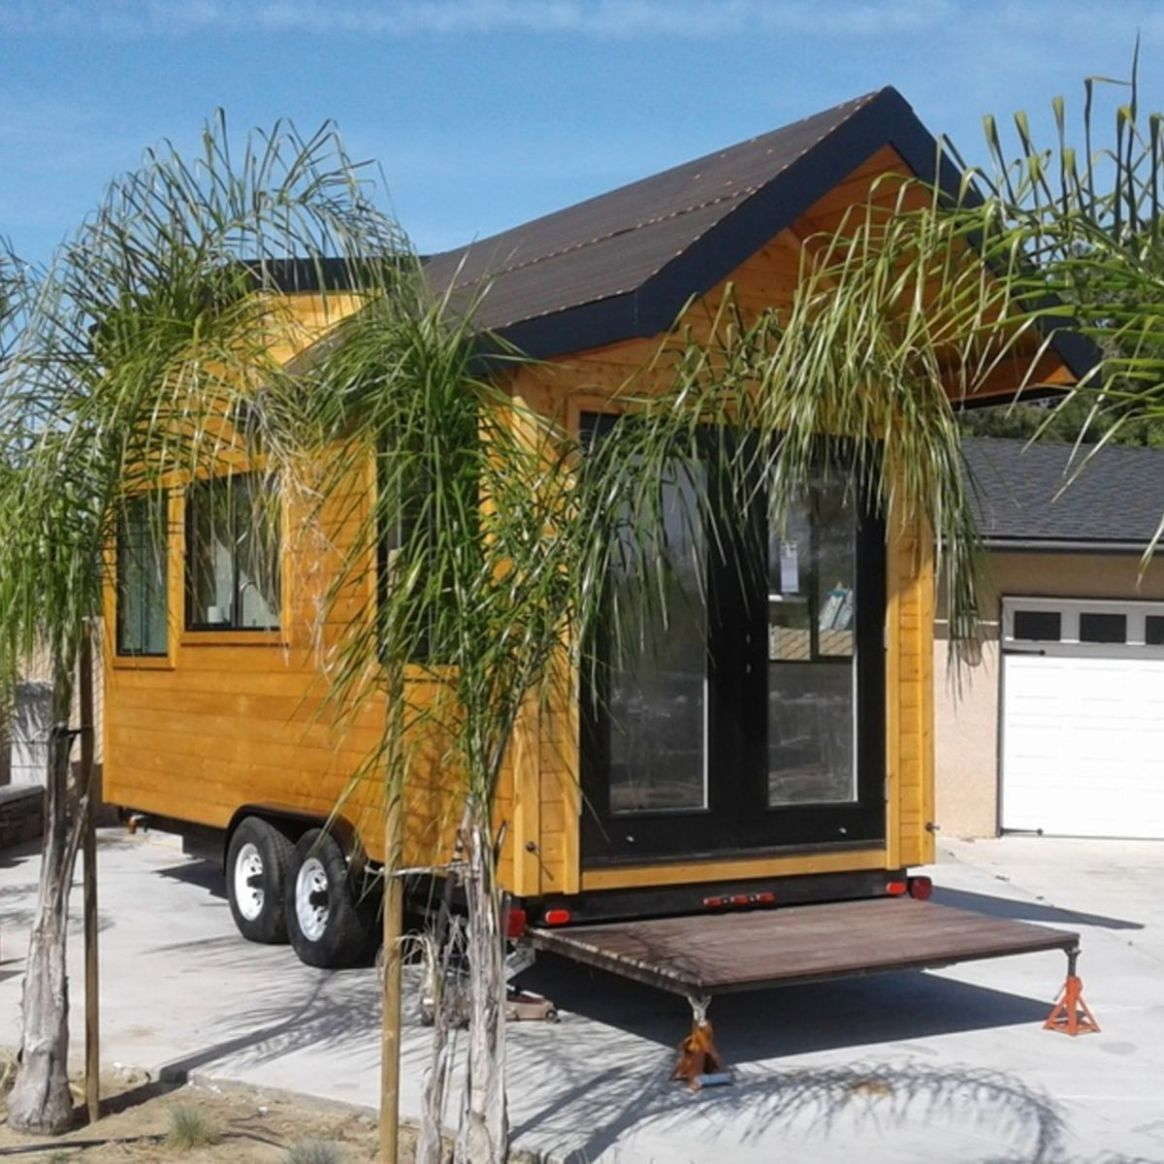 Tiny House - Tiny House for Sale in Fresno, California - Tiny House Listings - tiny house for sale california